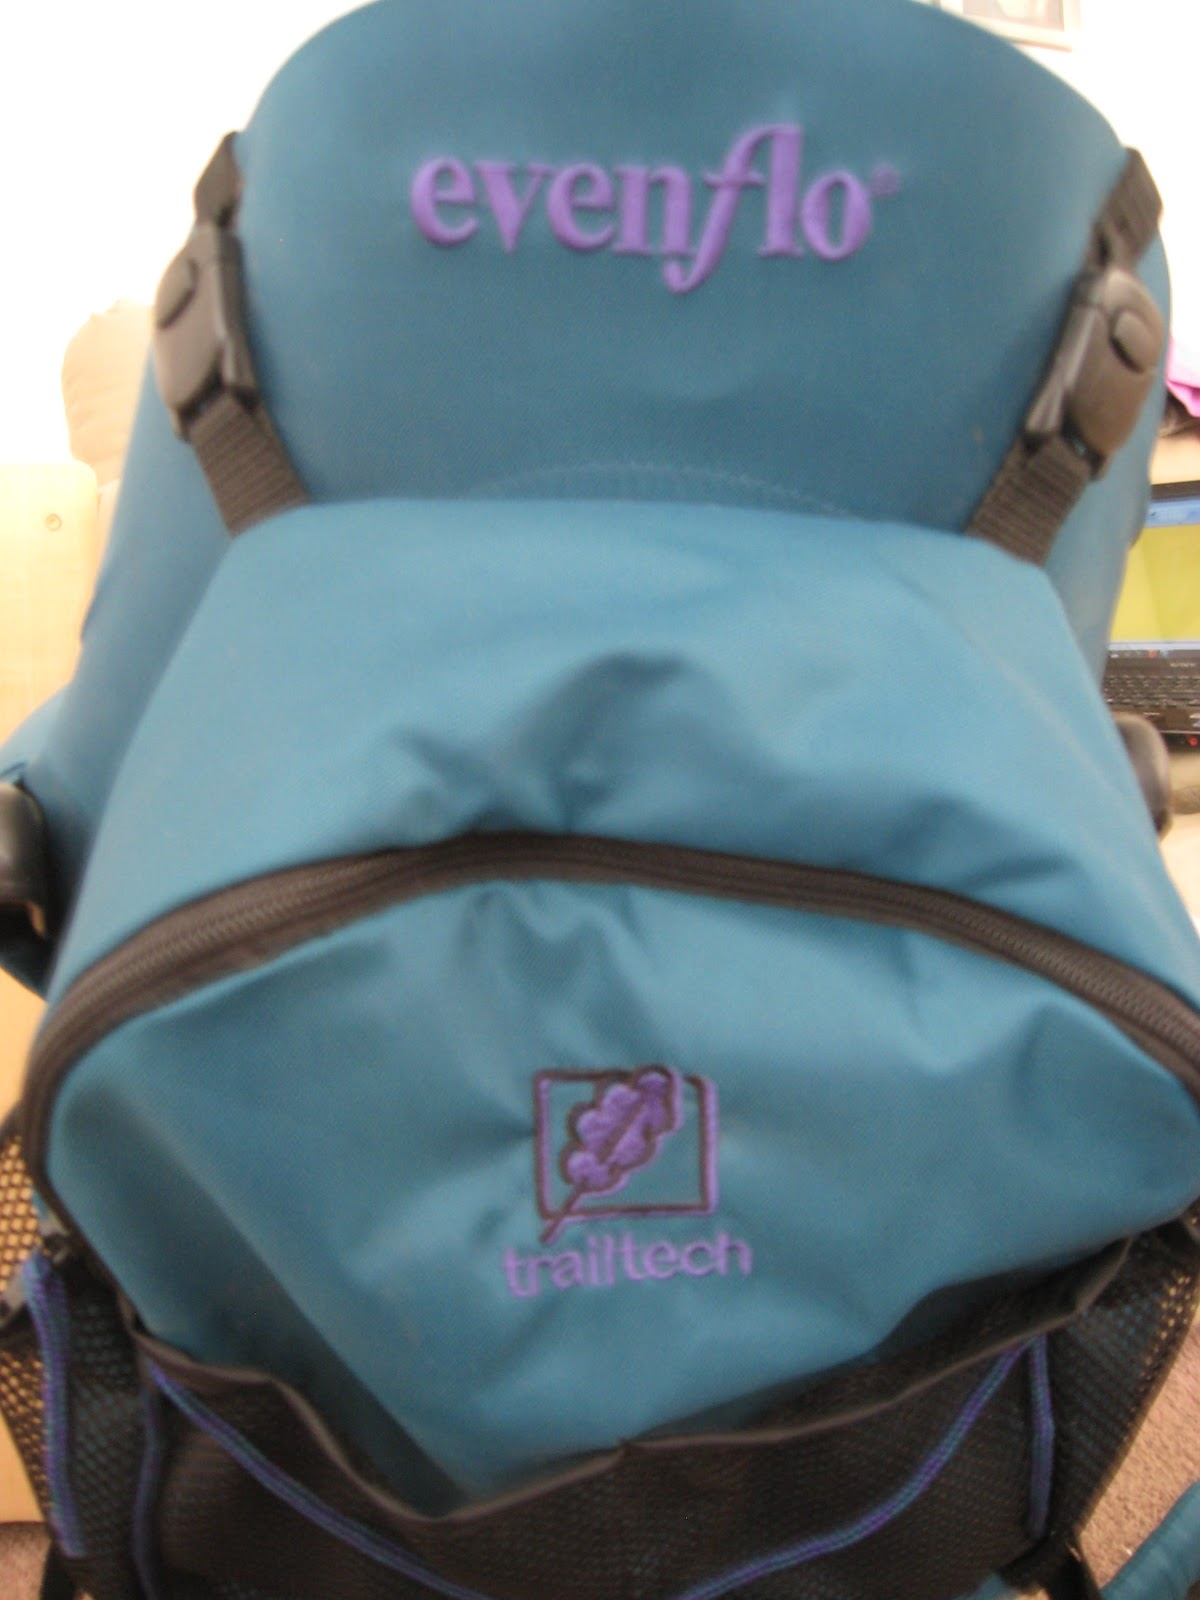 c79fc8aa329 Items for Craigslist  Evenflo TrailTech Backpack Baby Toddler ...